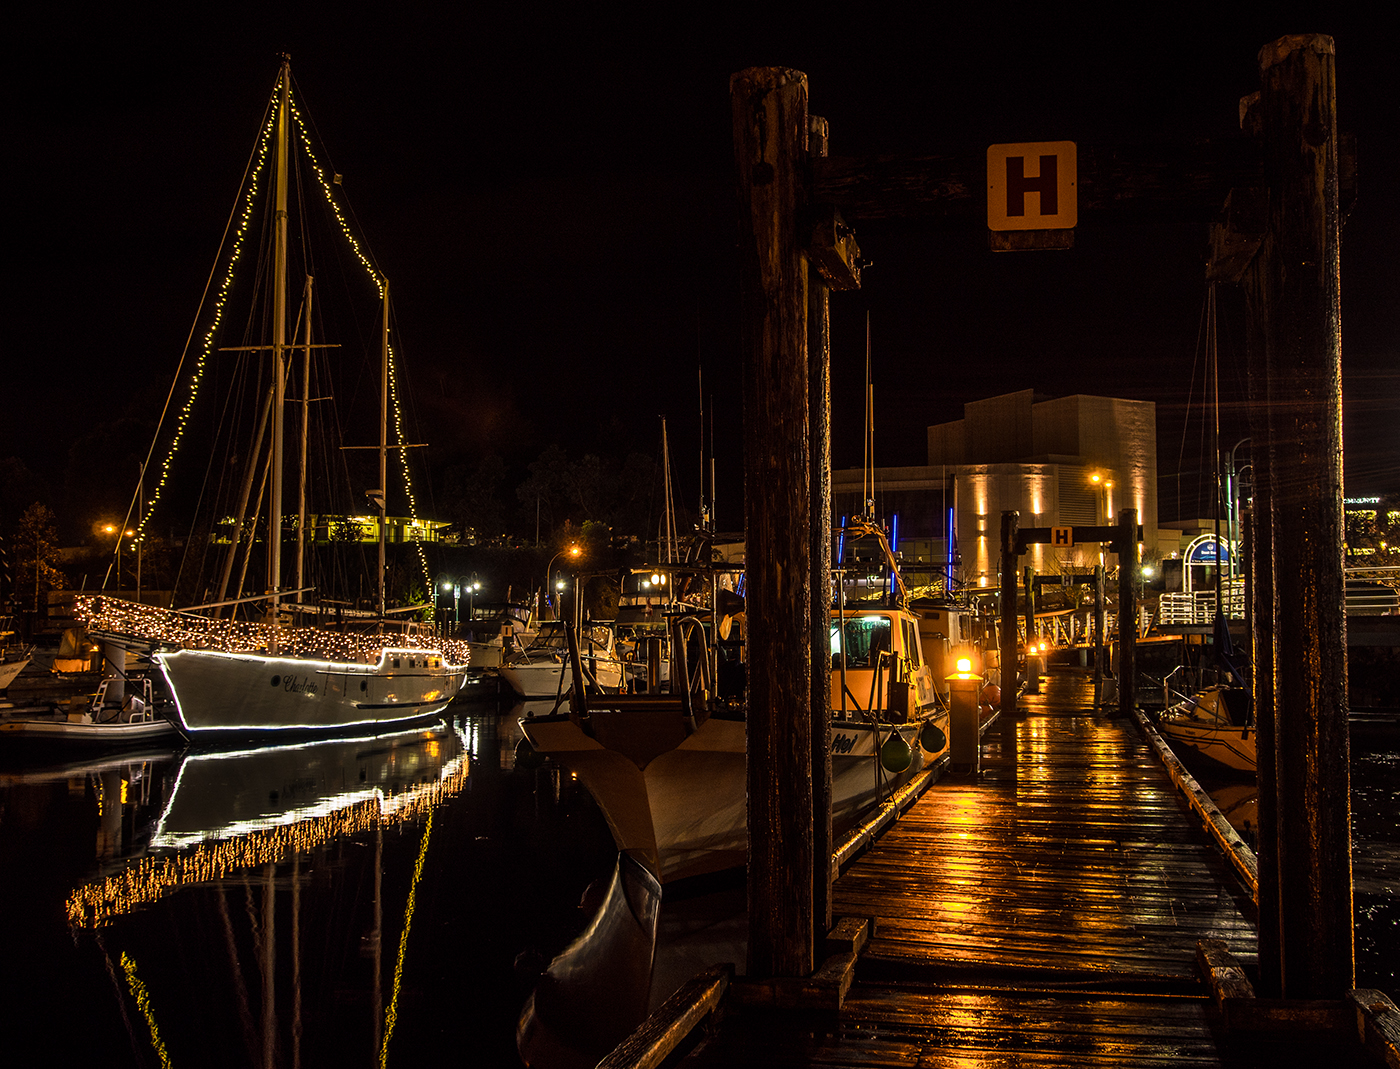 Its getting close to Christmas at the Nanaimo Commercial Boat Basin